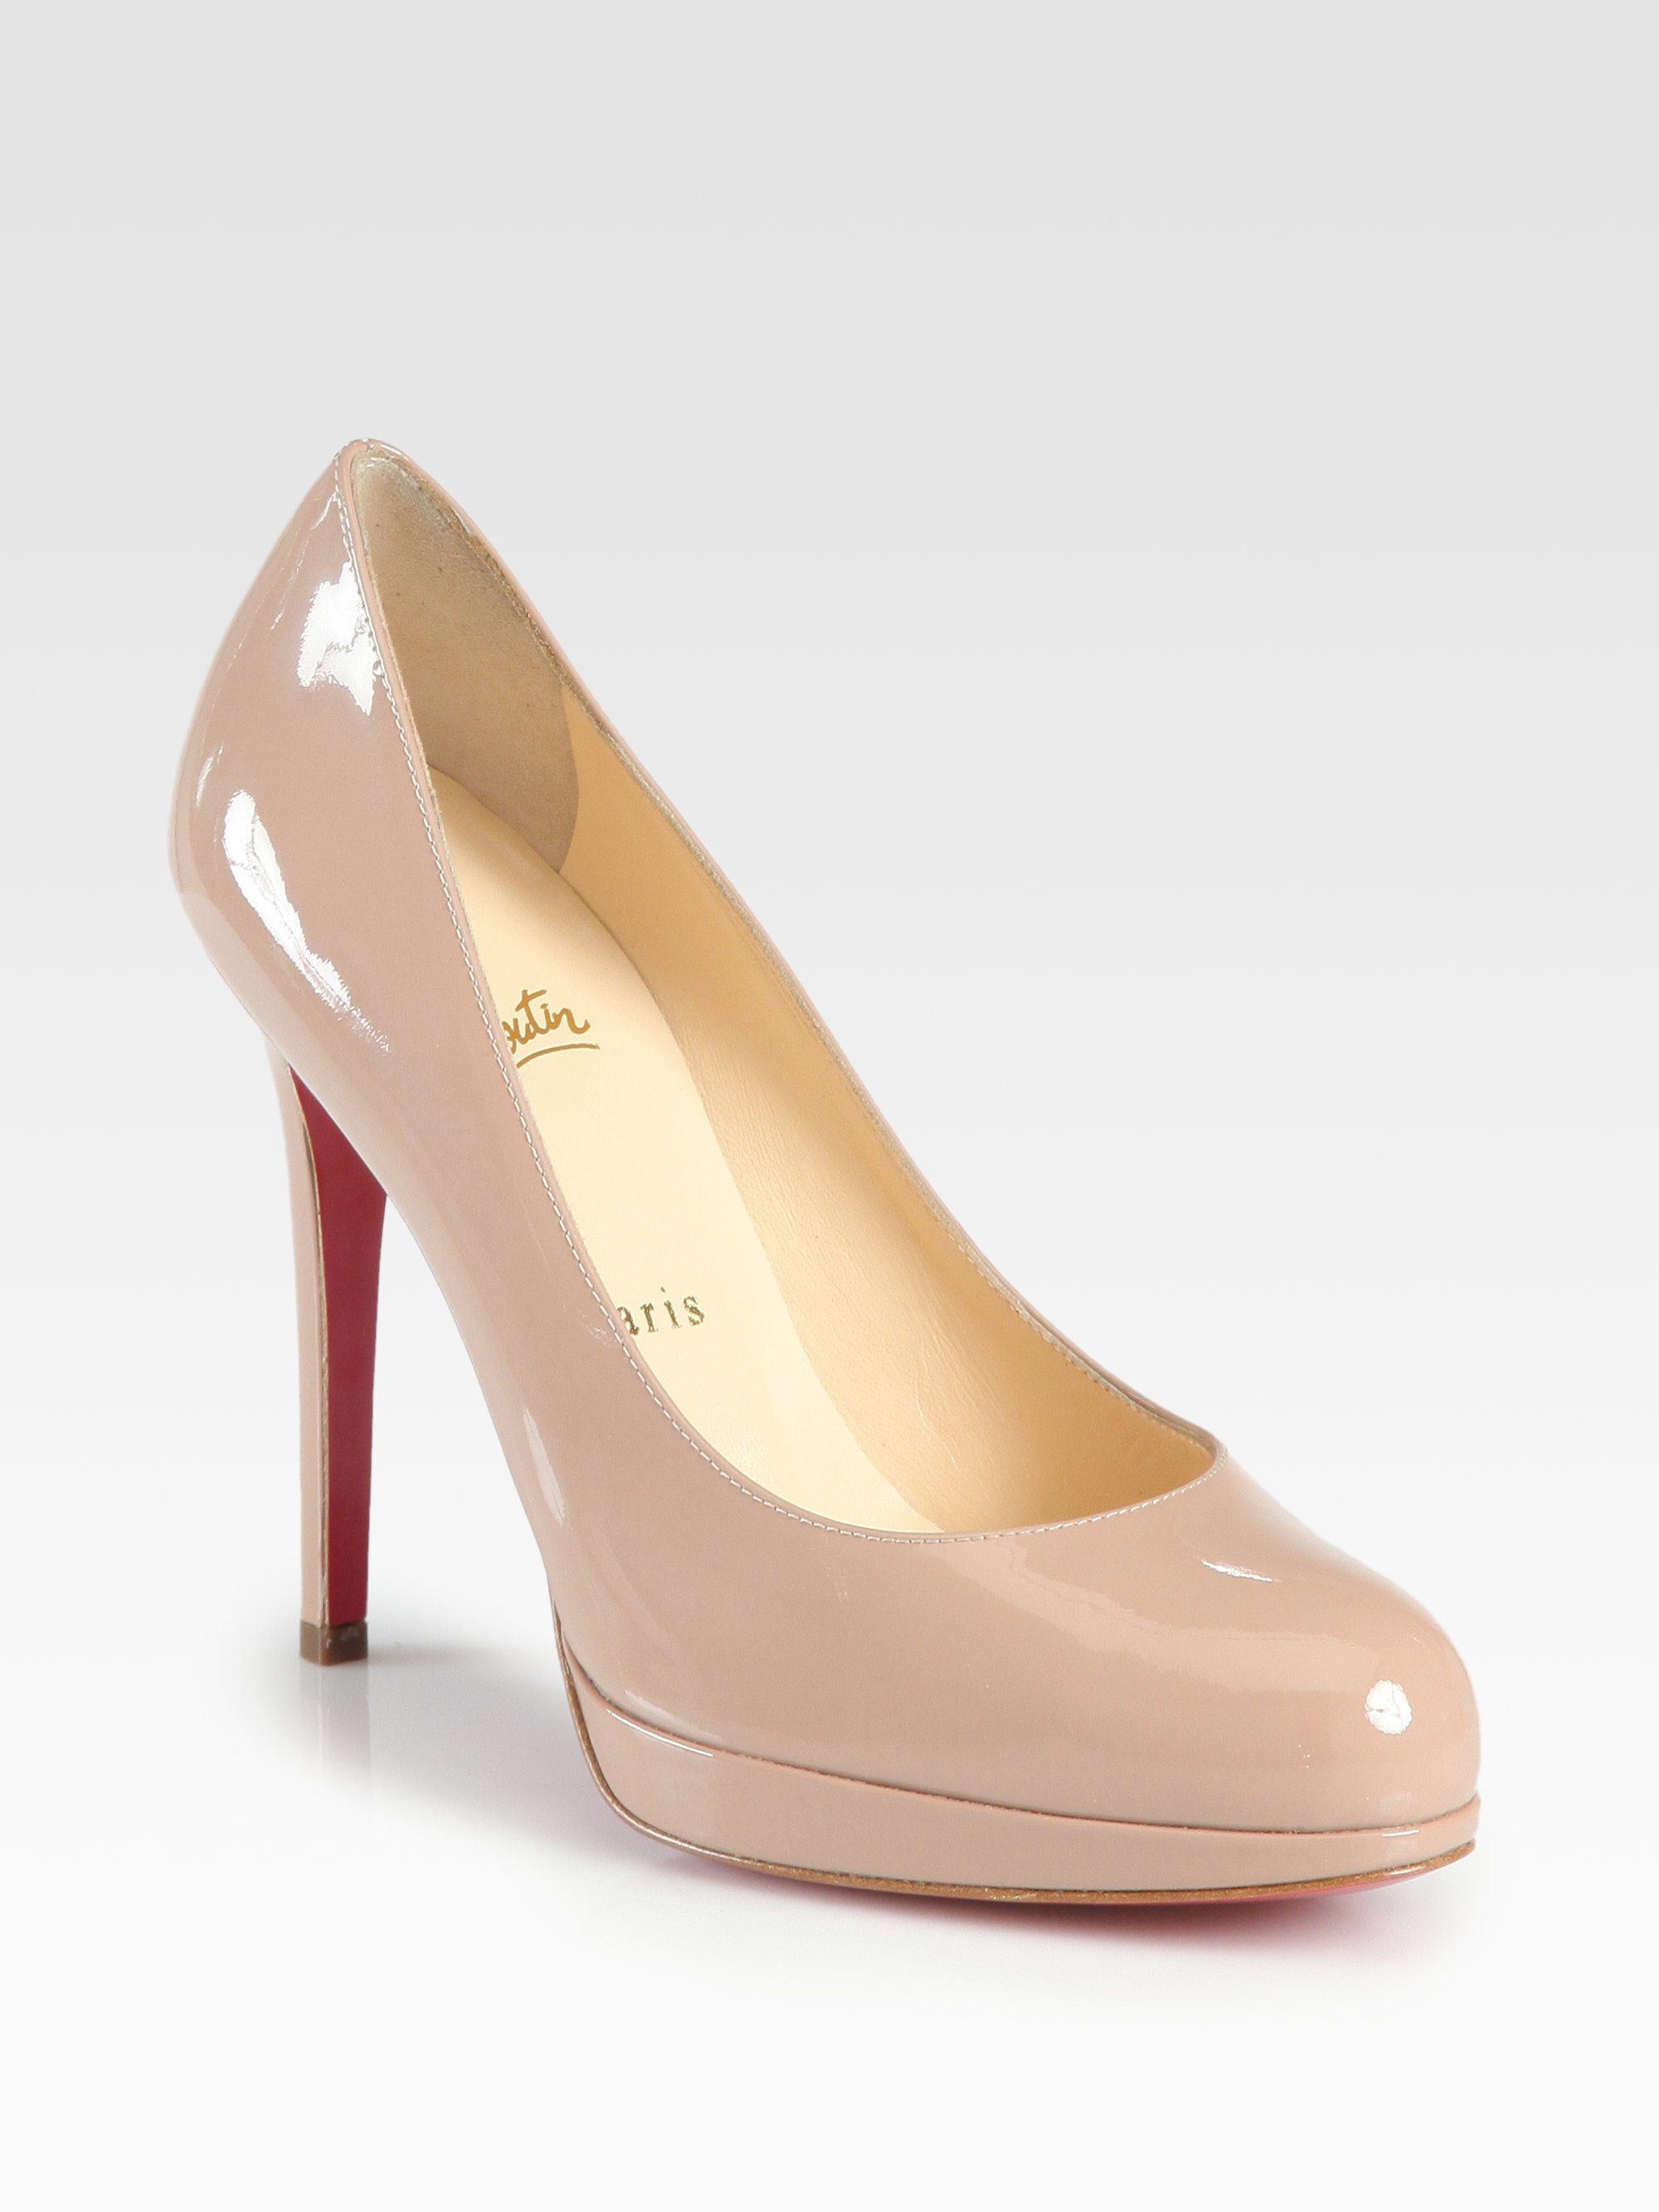 9e751e38b89 Lyst - Christian Louboutin New Simple 120 Patent Leather Pumps in ...